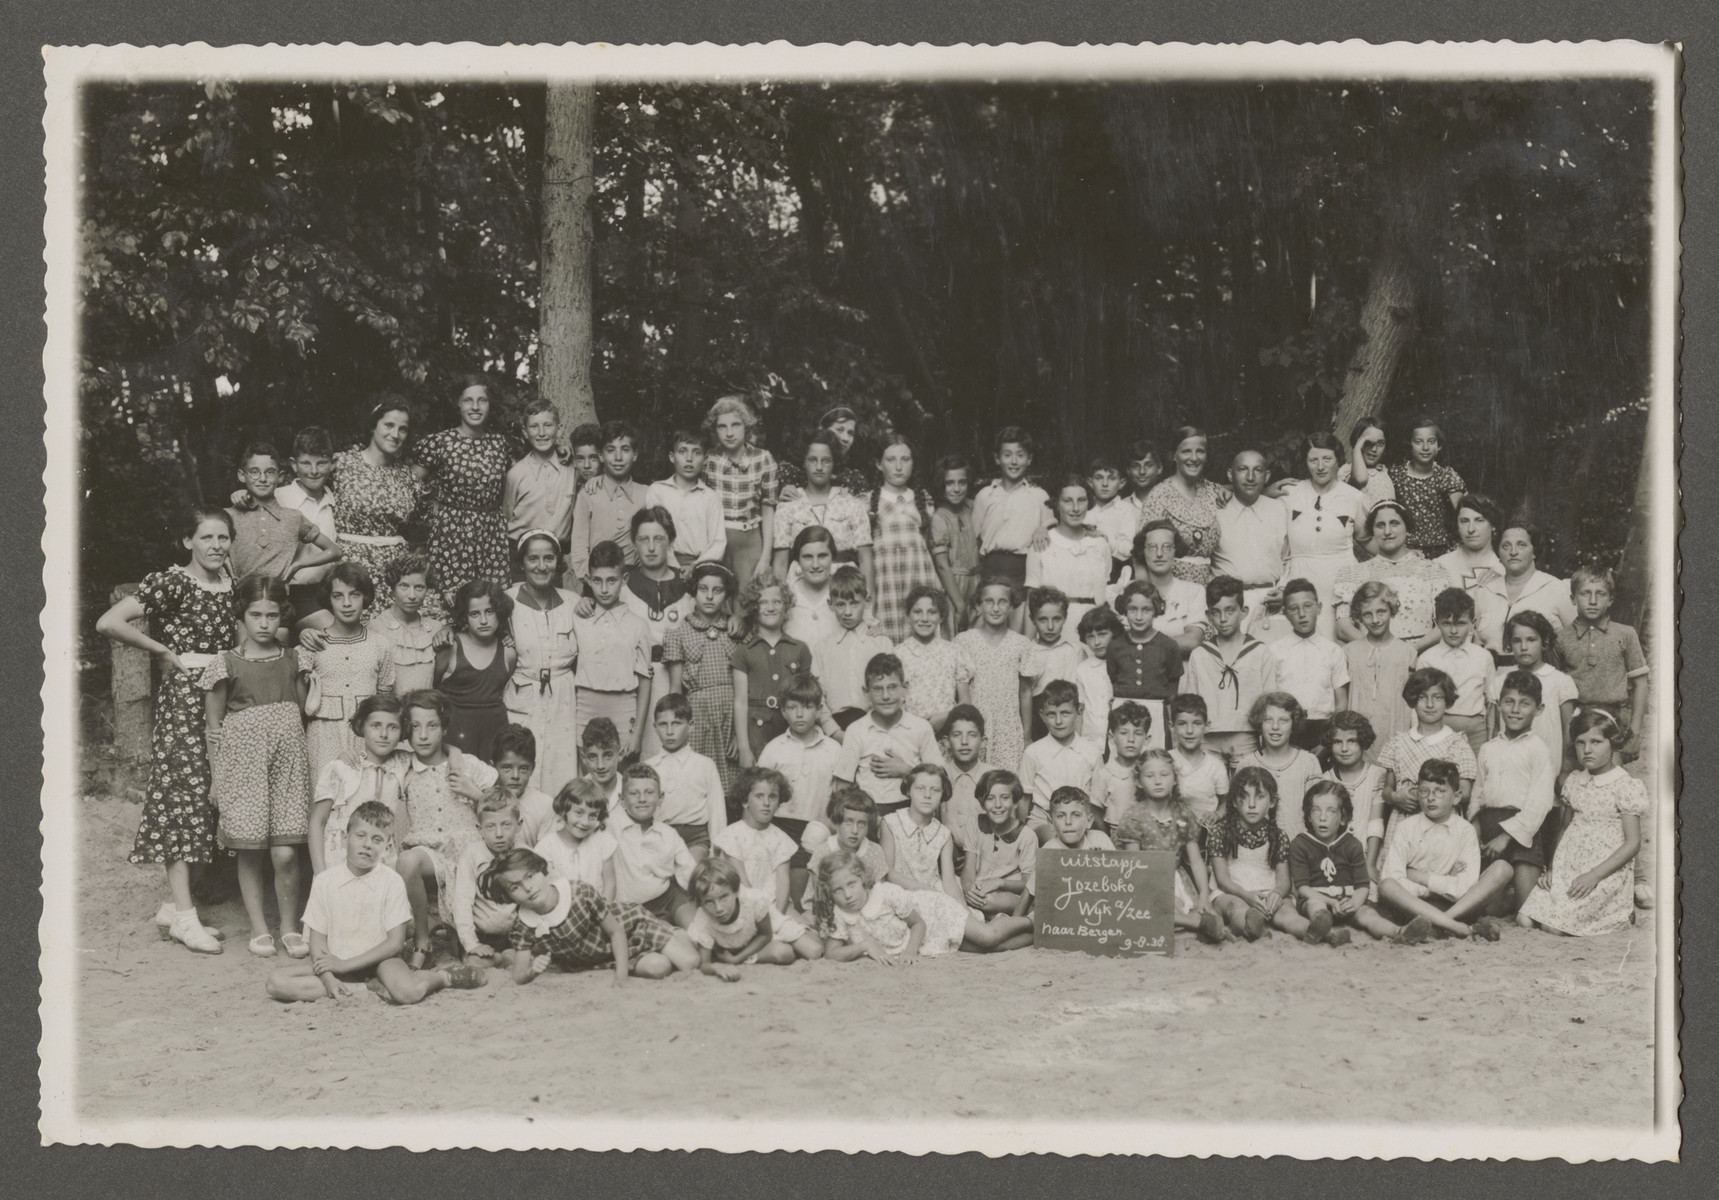 Group portrait of school children in a school in Amsterdam.  Among those pictured is Henri Rodrigues (front row, holding the sign).  The third girl to the right of Henri is his sister, Elizabeth Rodrigues (later Cassuto).